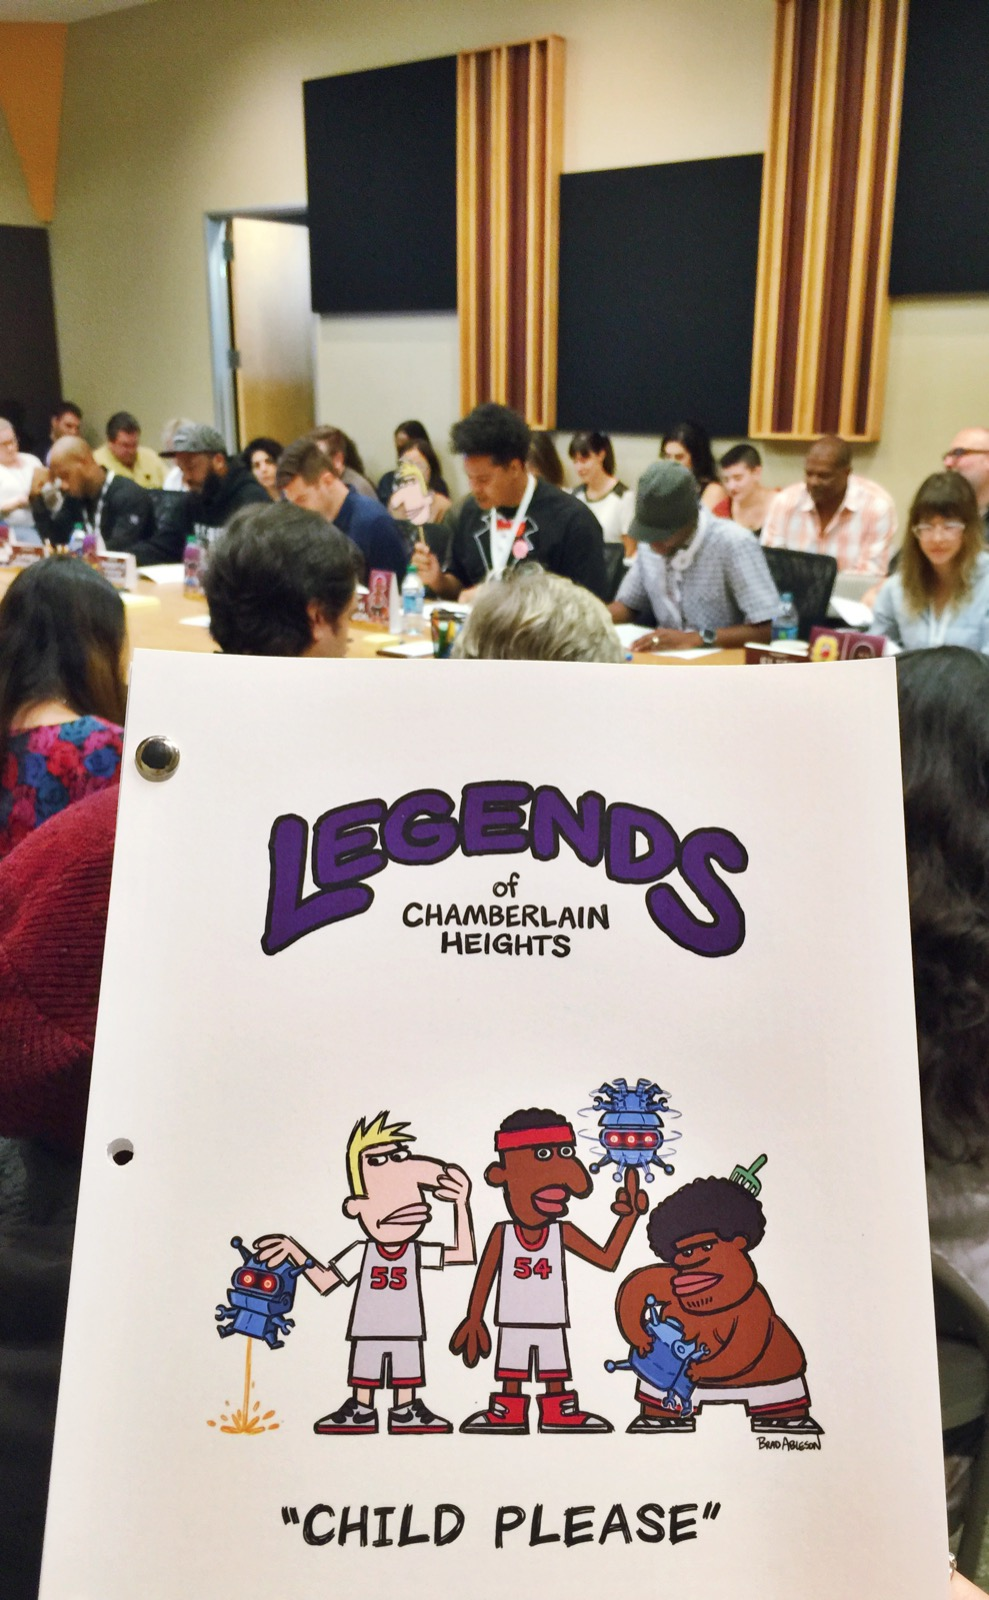 Legends Table Read